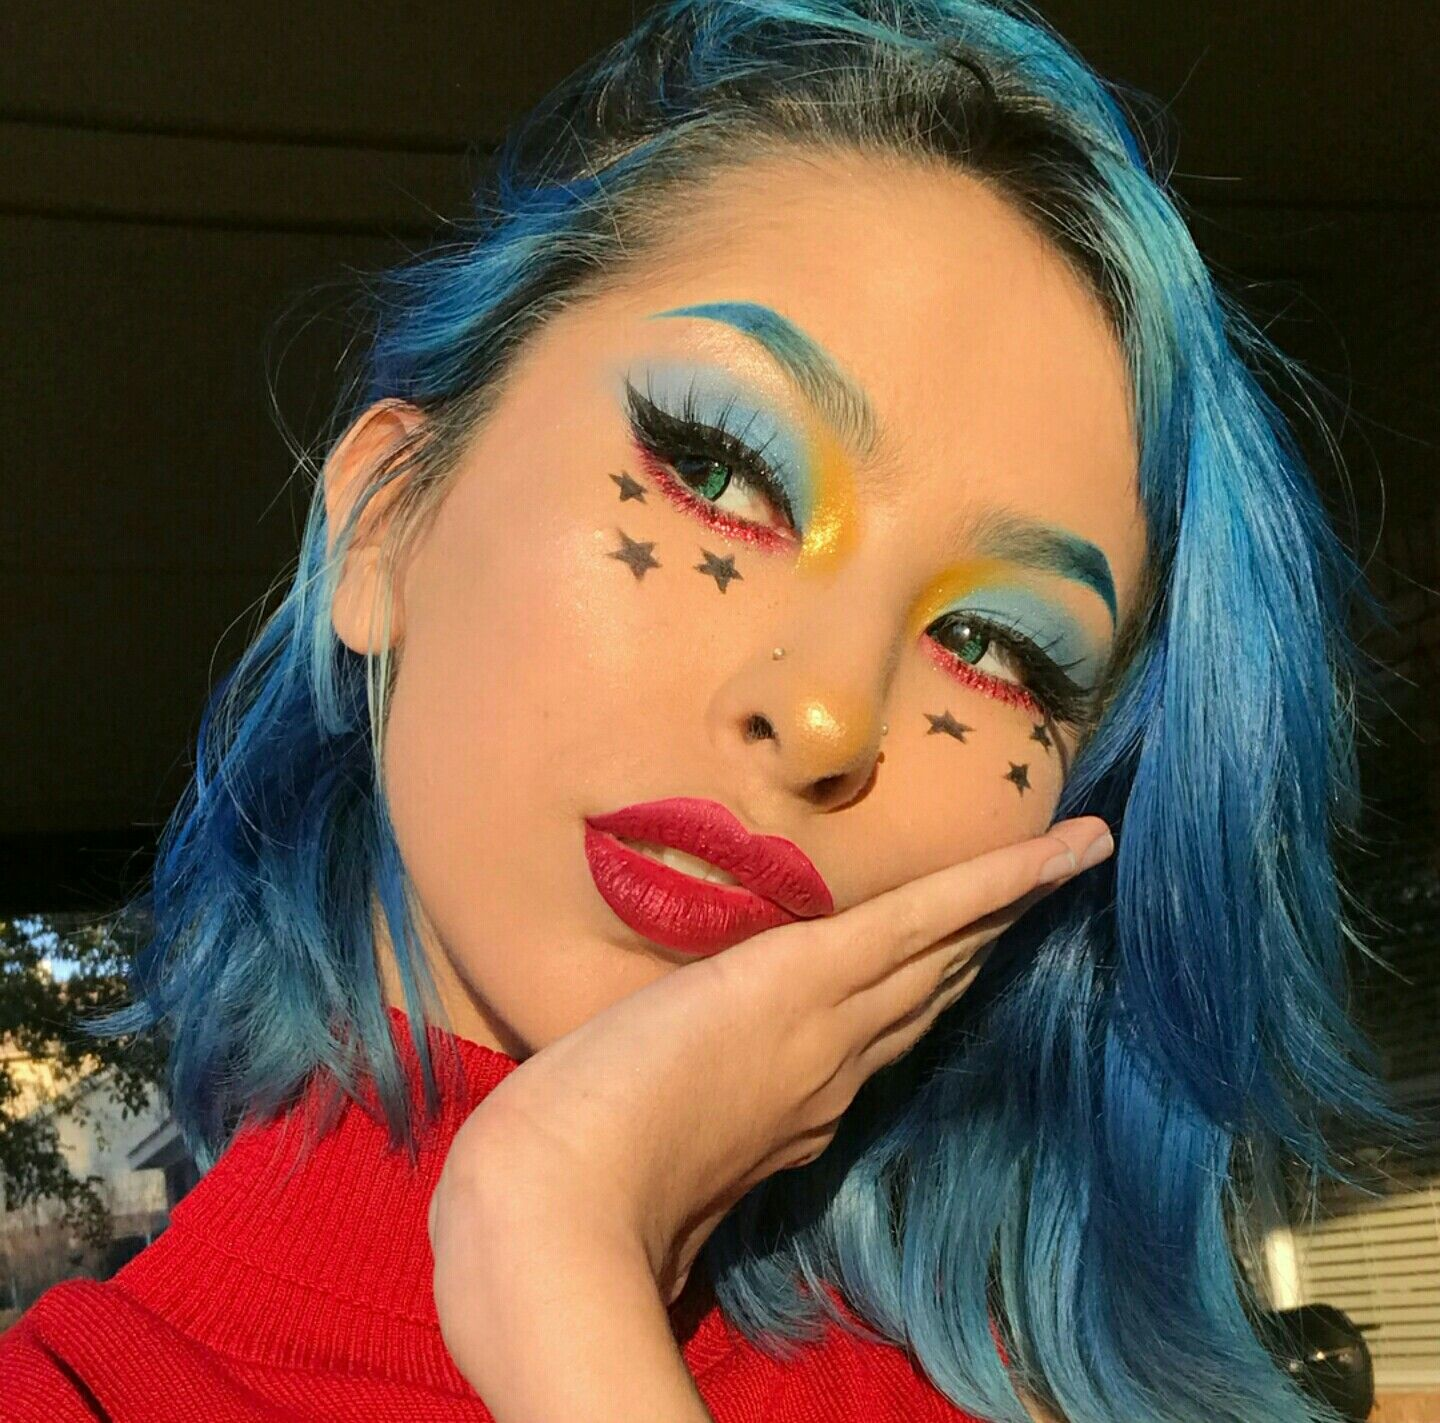 Eyeliner Stars Blue Brows Eyebrow Bright Trend Makeup Look Ideas Inspiration Inspo Cute Makeup Creative Makeup Looks Makeup Inspiration